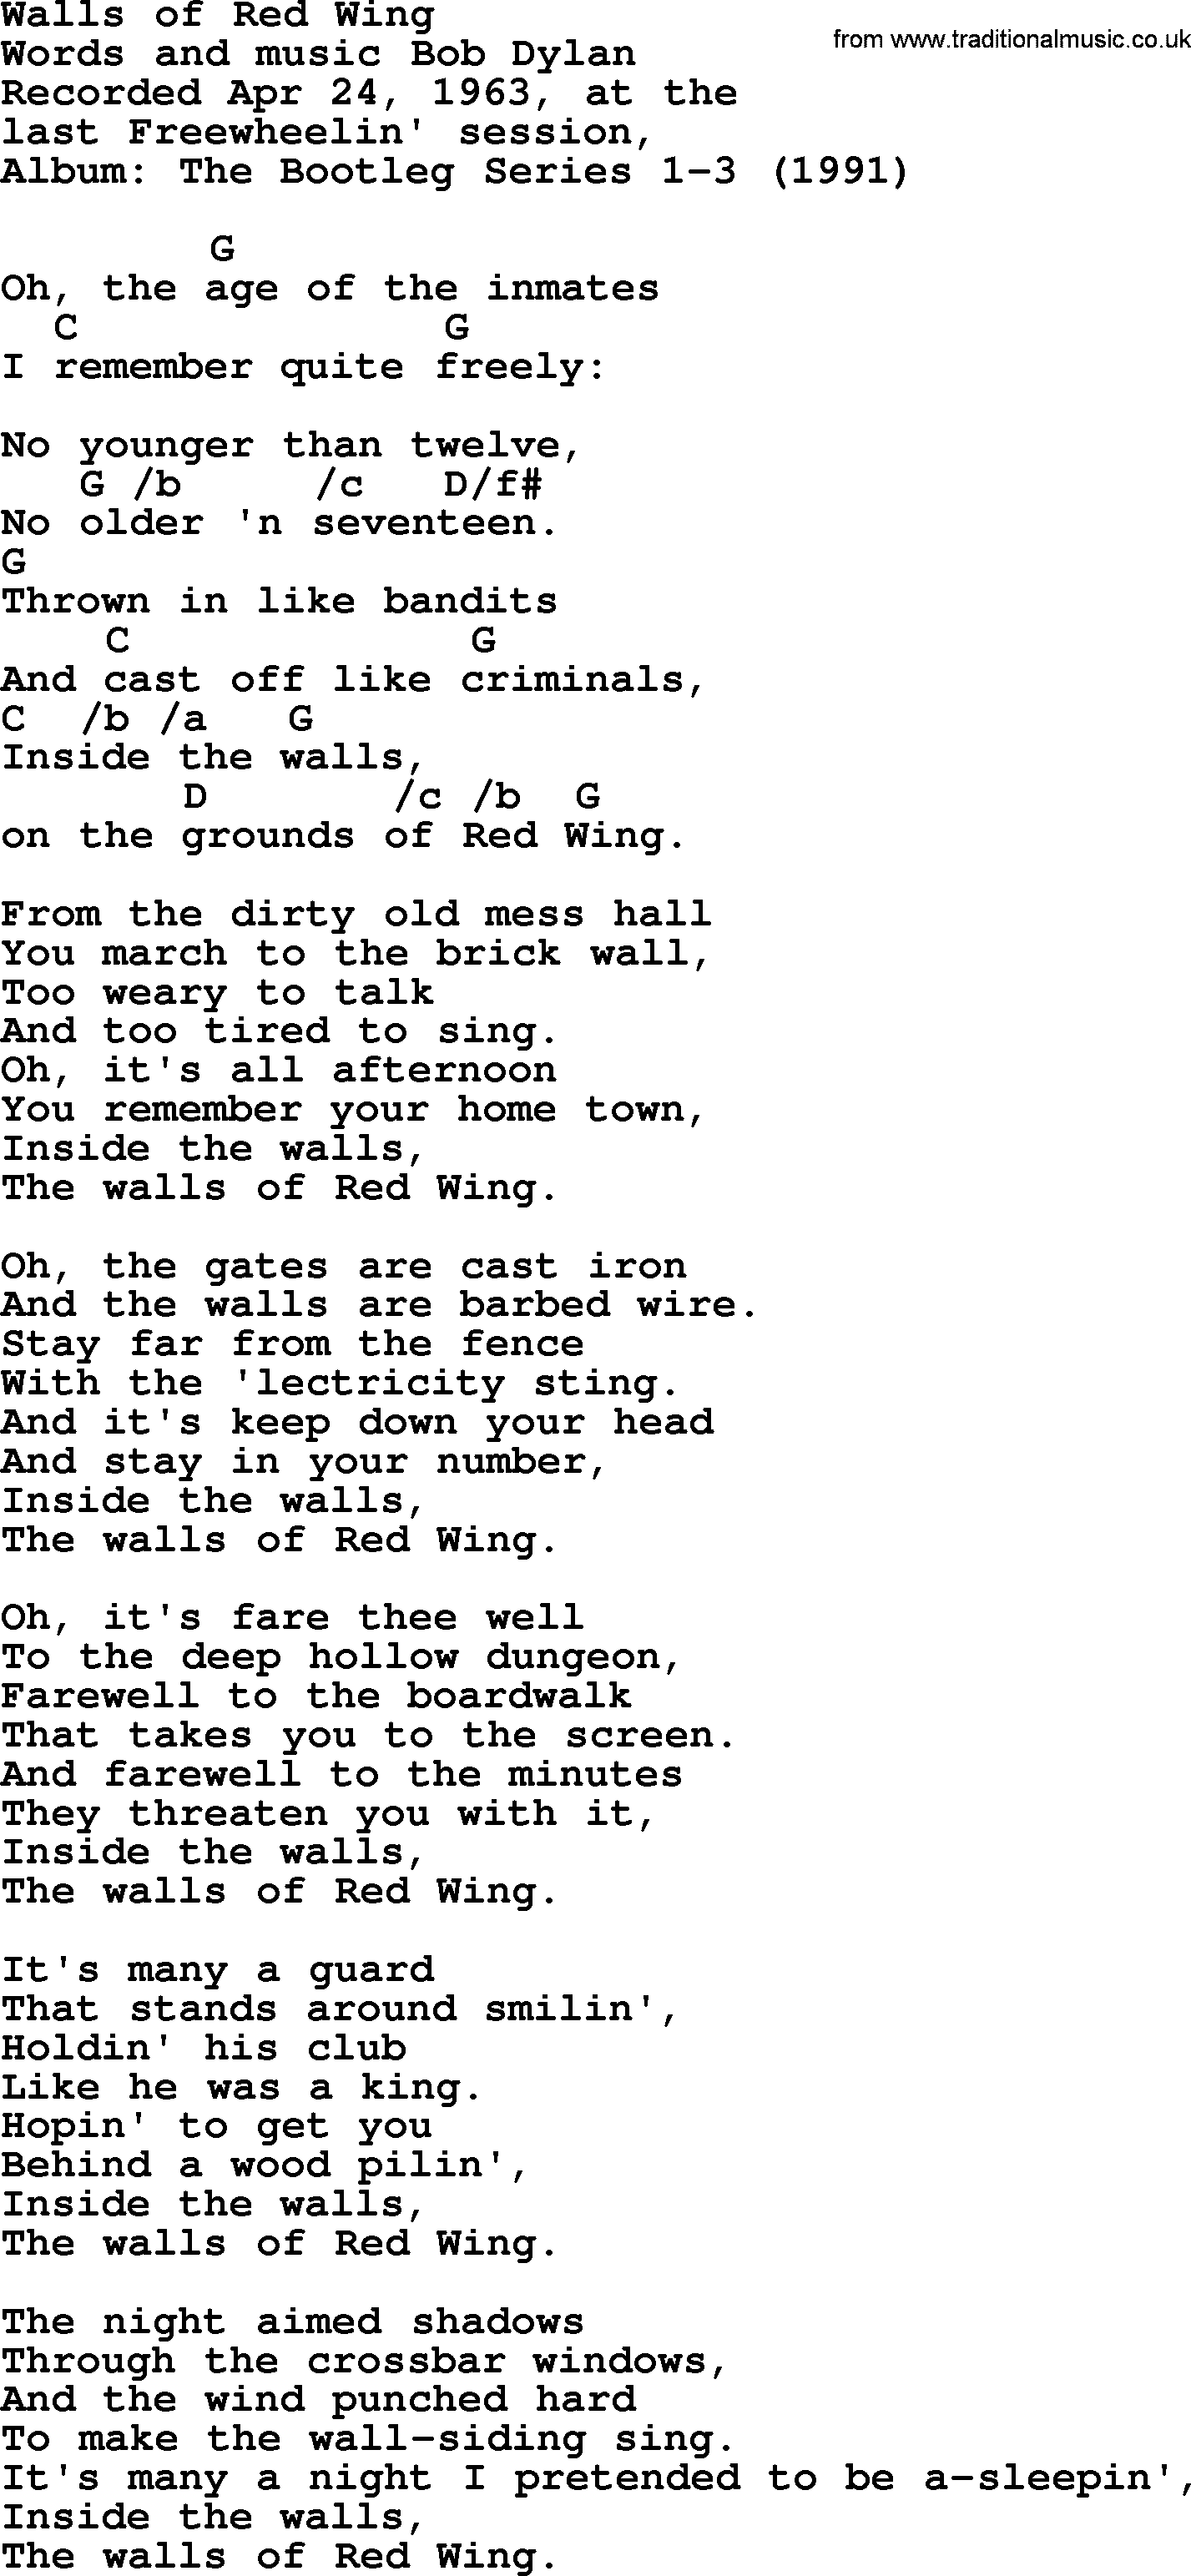 Bob dylan song walls of red wing lyrics and chords bob dylan song lyrics with chords walls of red wing hexwebz Image collections